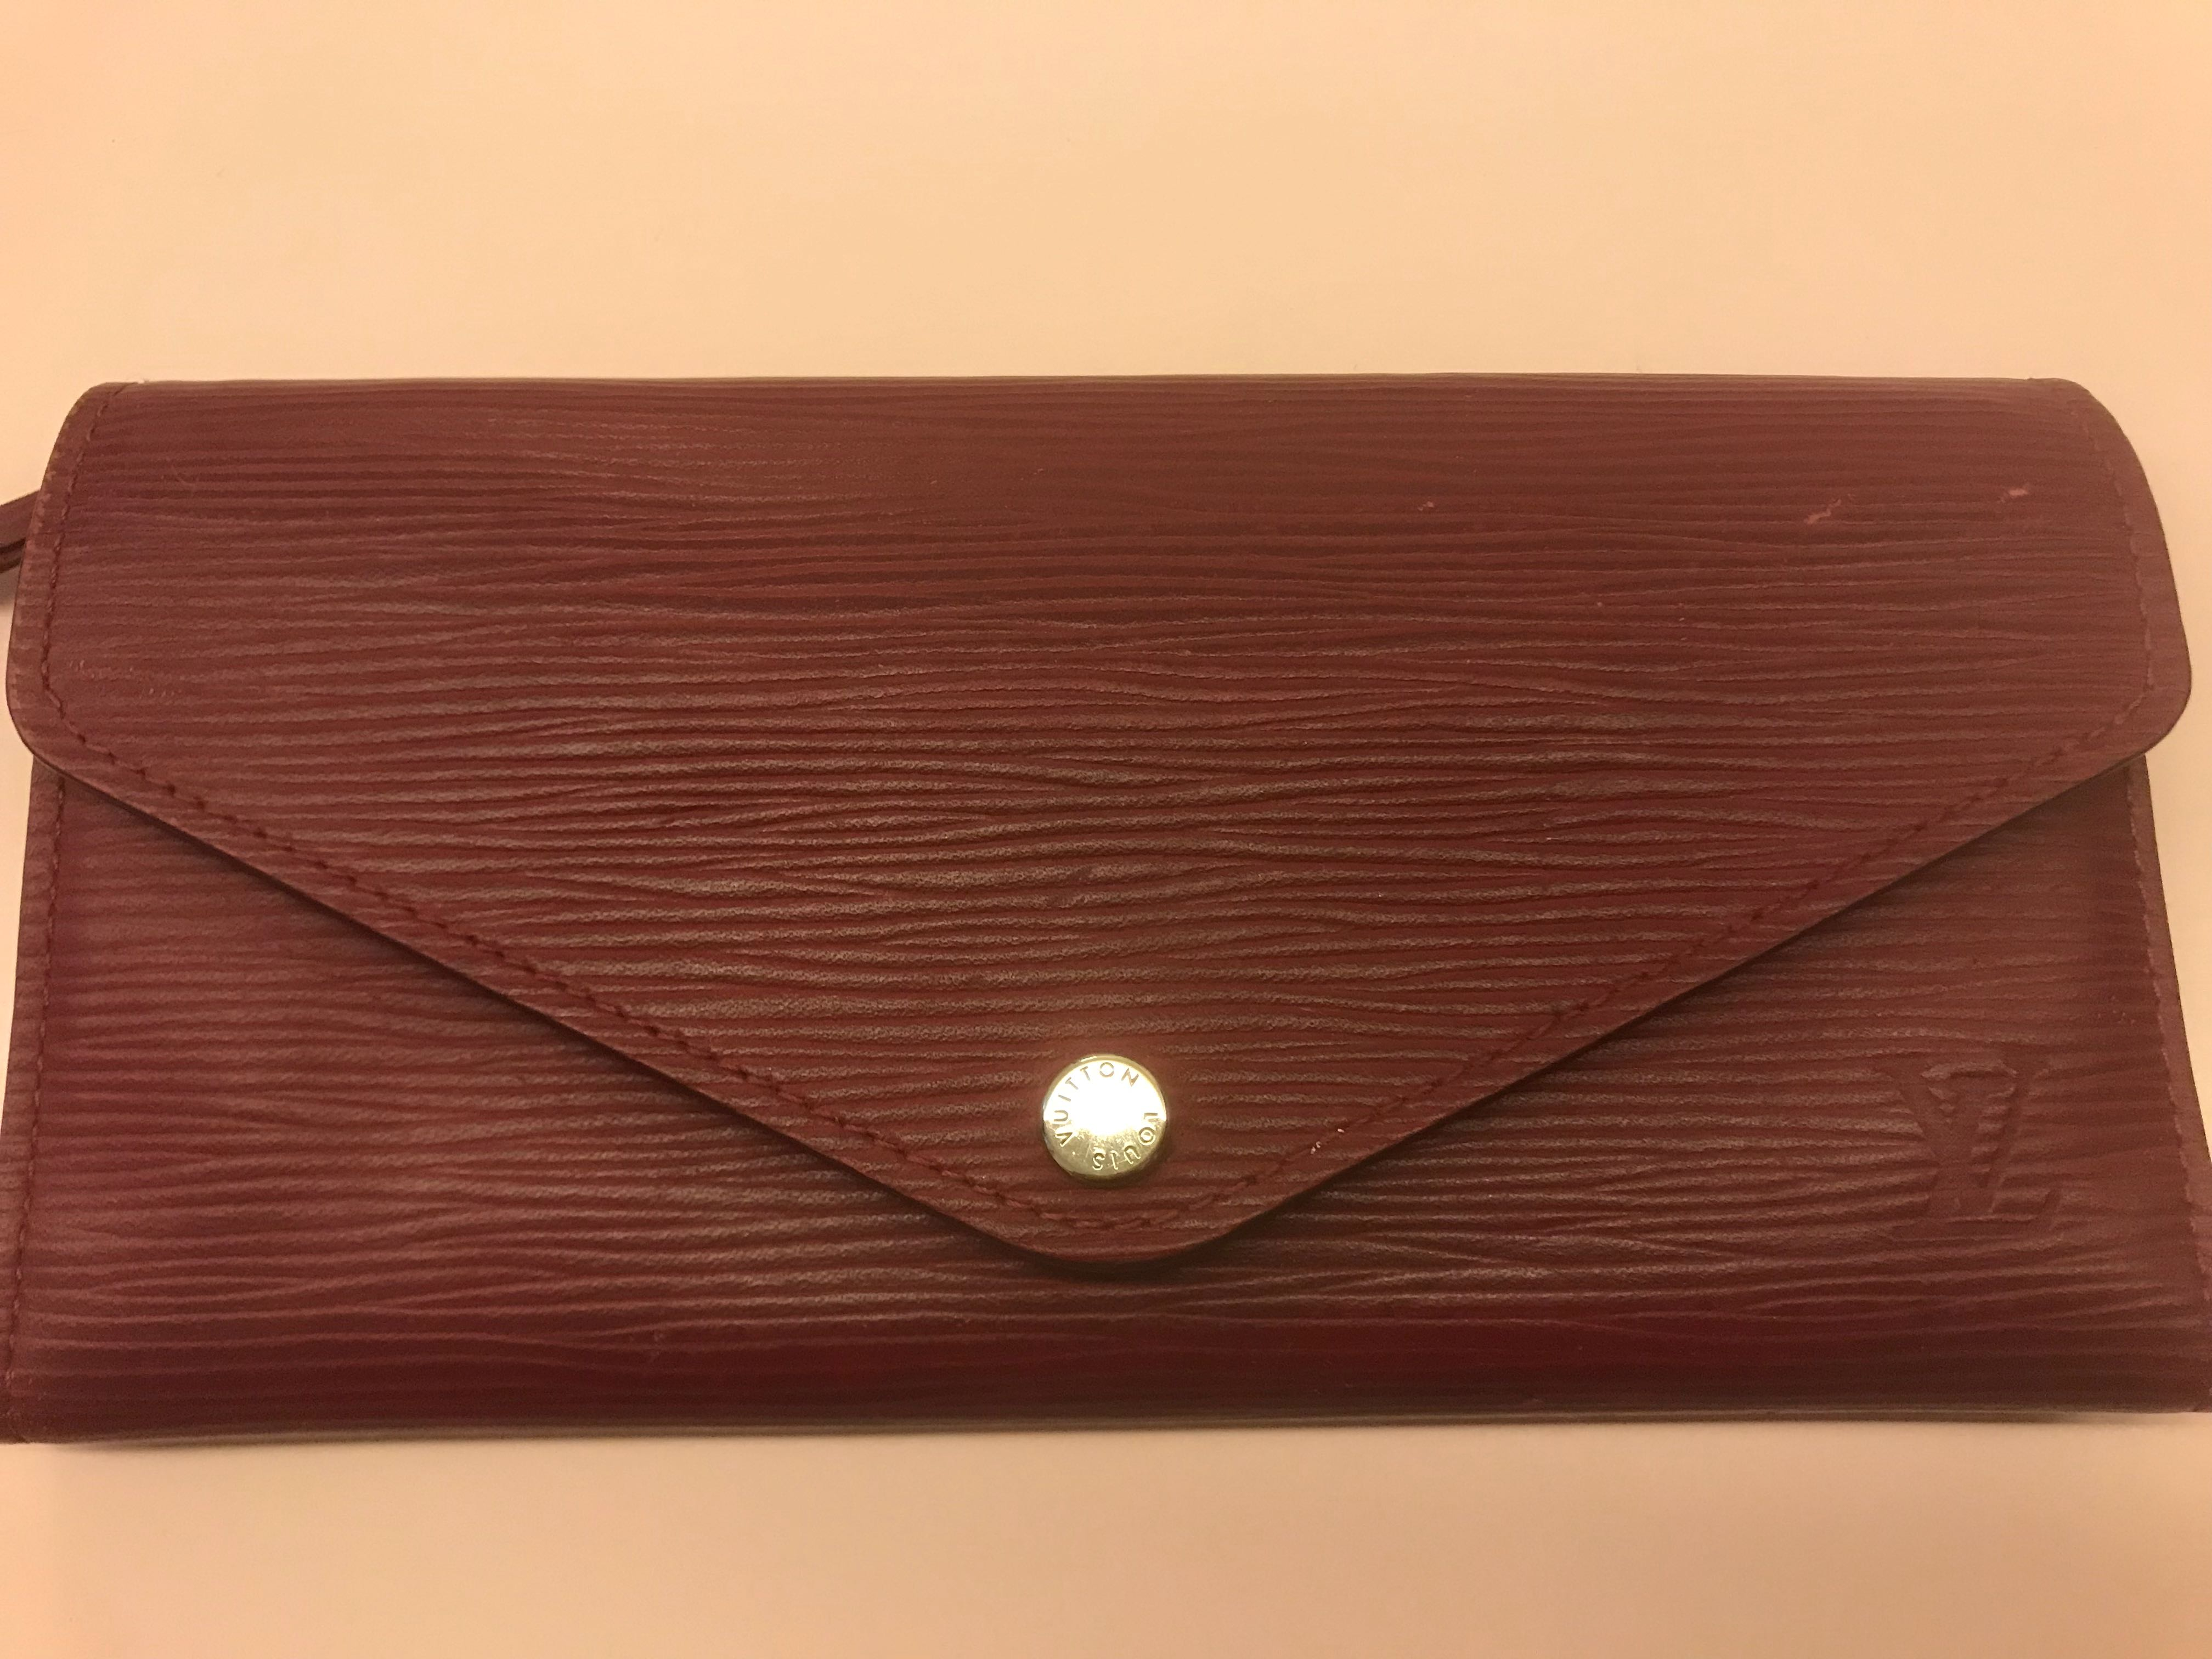 7bc322f0f7 Louis Vuitton (LV) Josephine Wallet - Authentic in Epi Leather